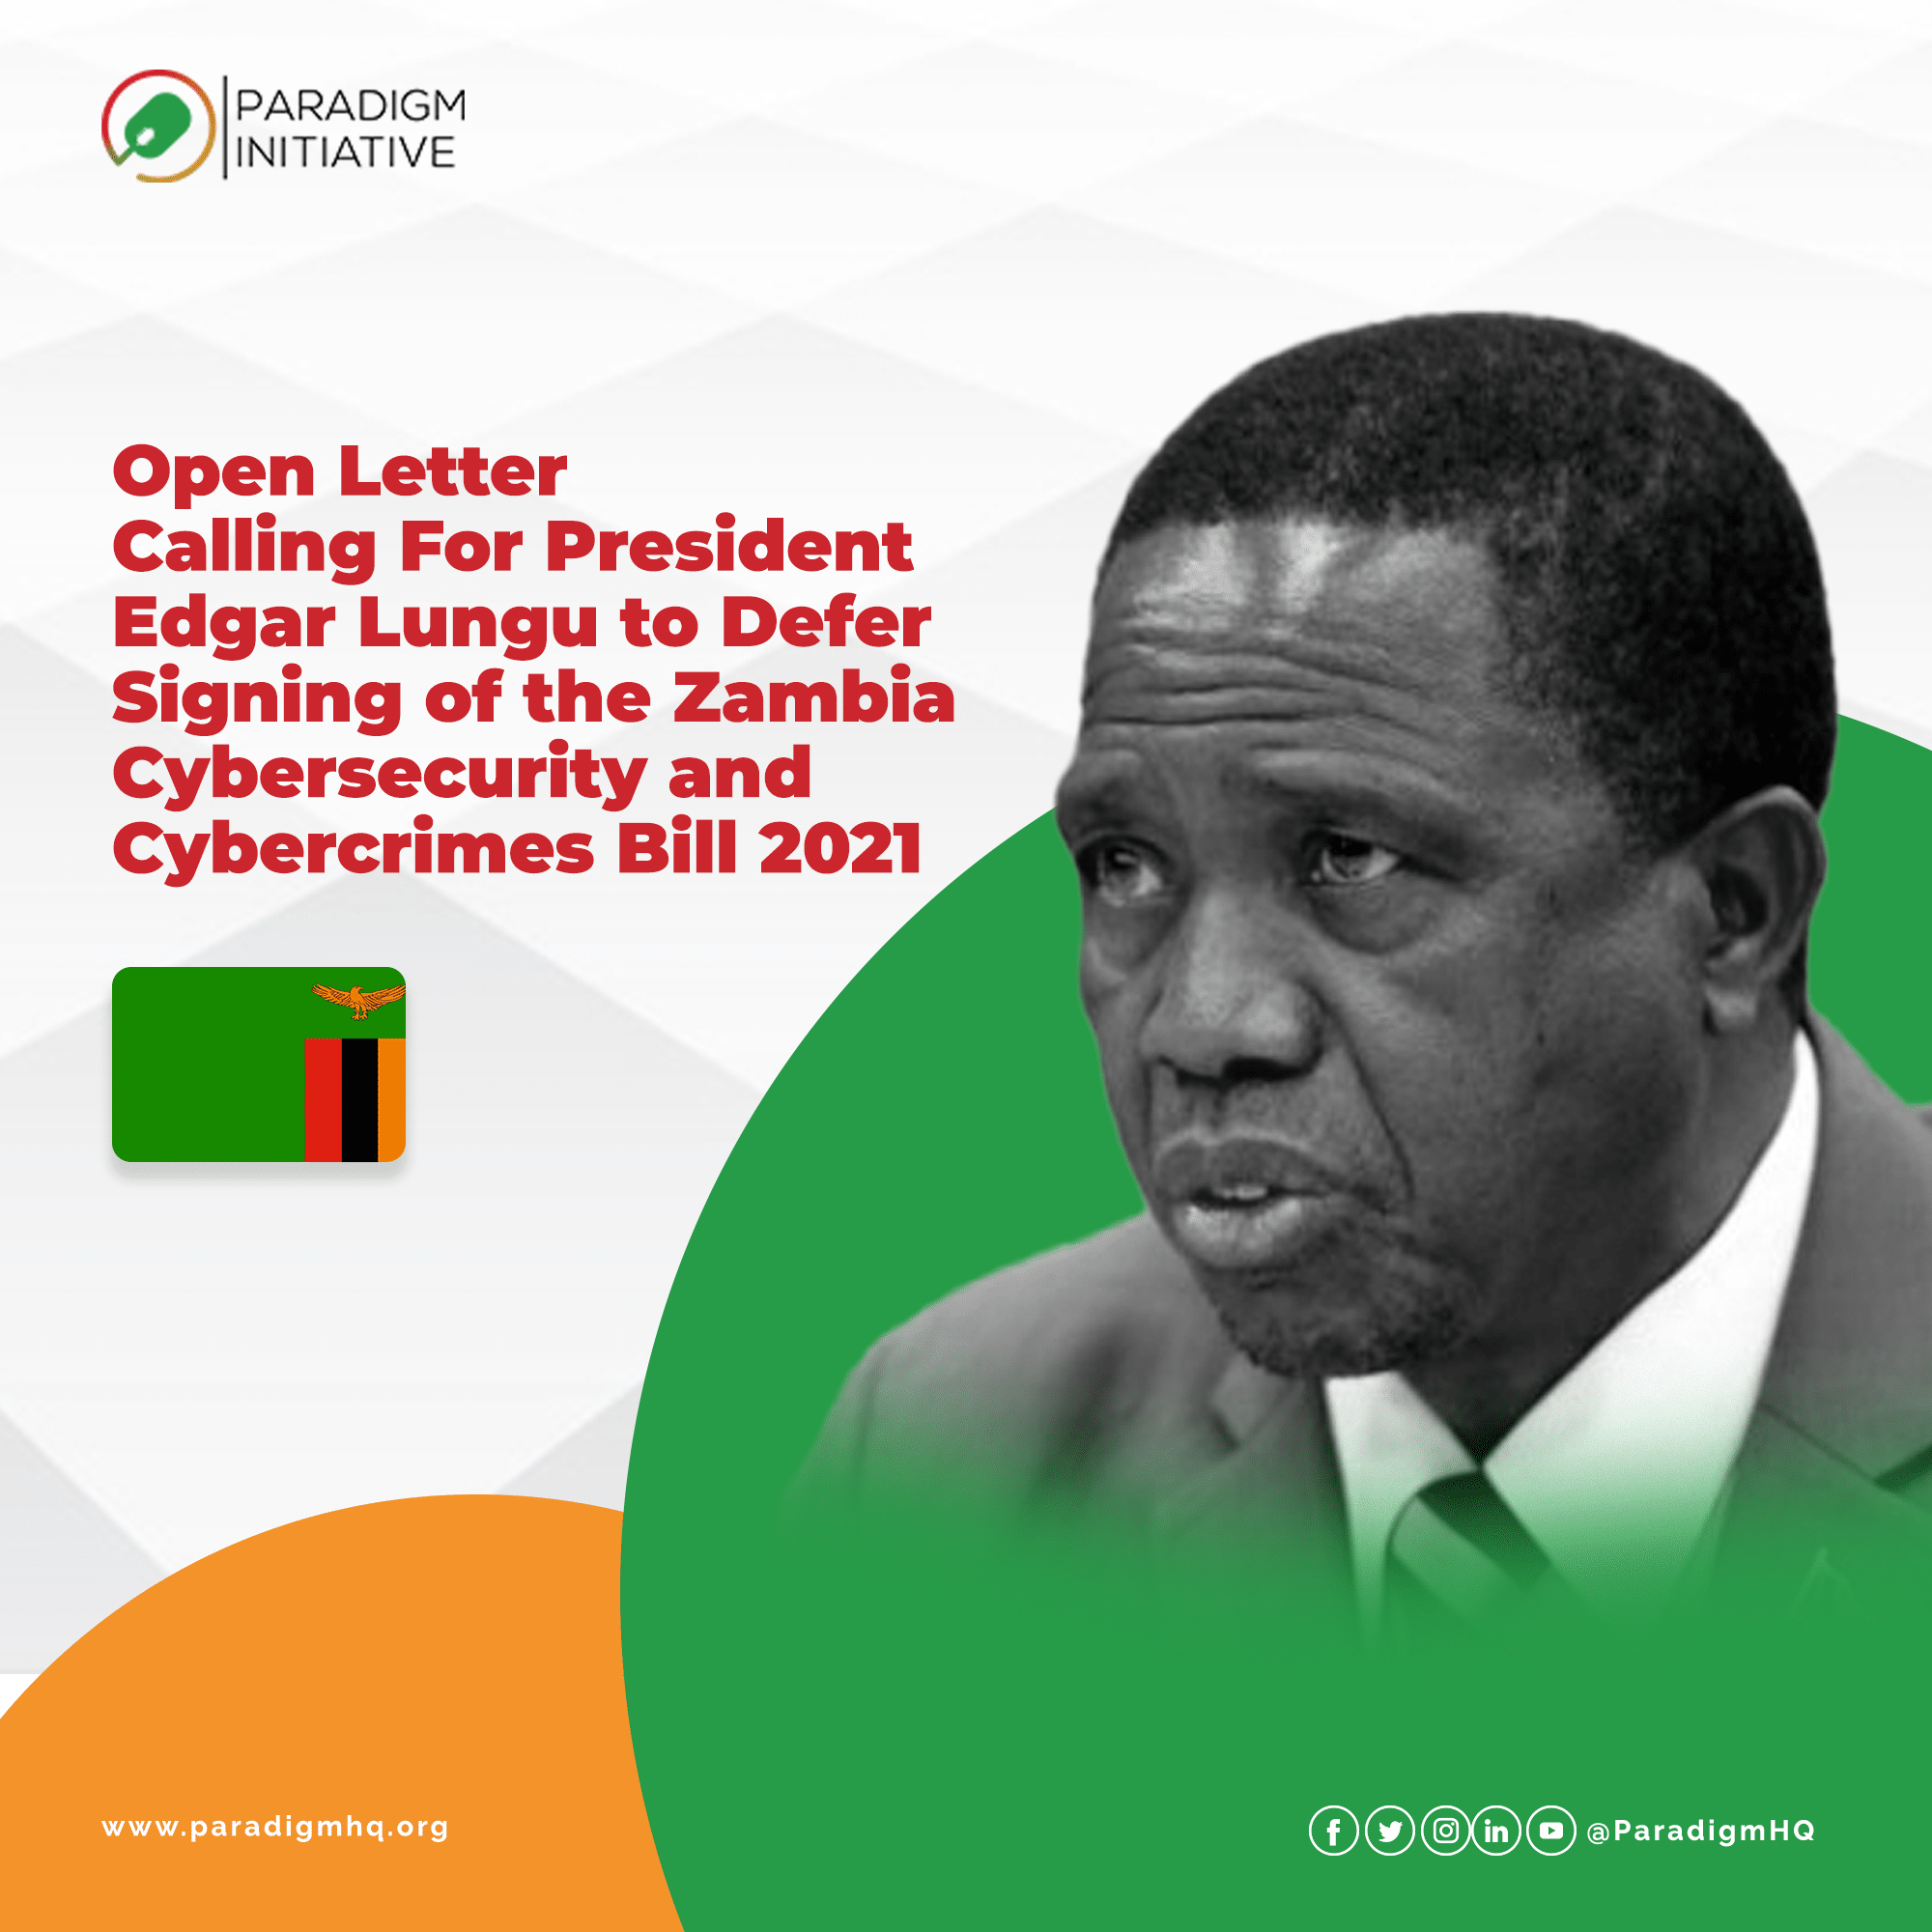 Open Letter Calling For President Edgar Lungu to Defer Signing of the Zambia Cybersecurity and Cybercrimes Bill 2021